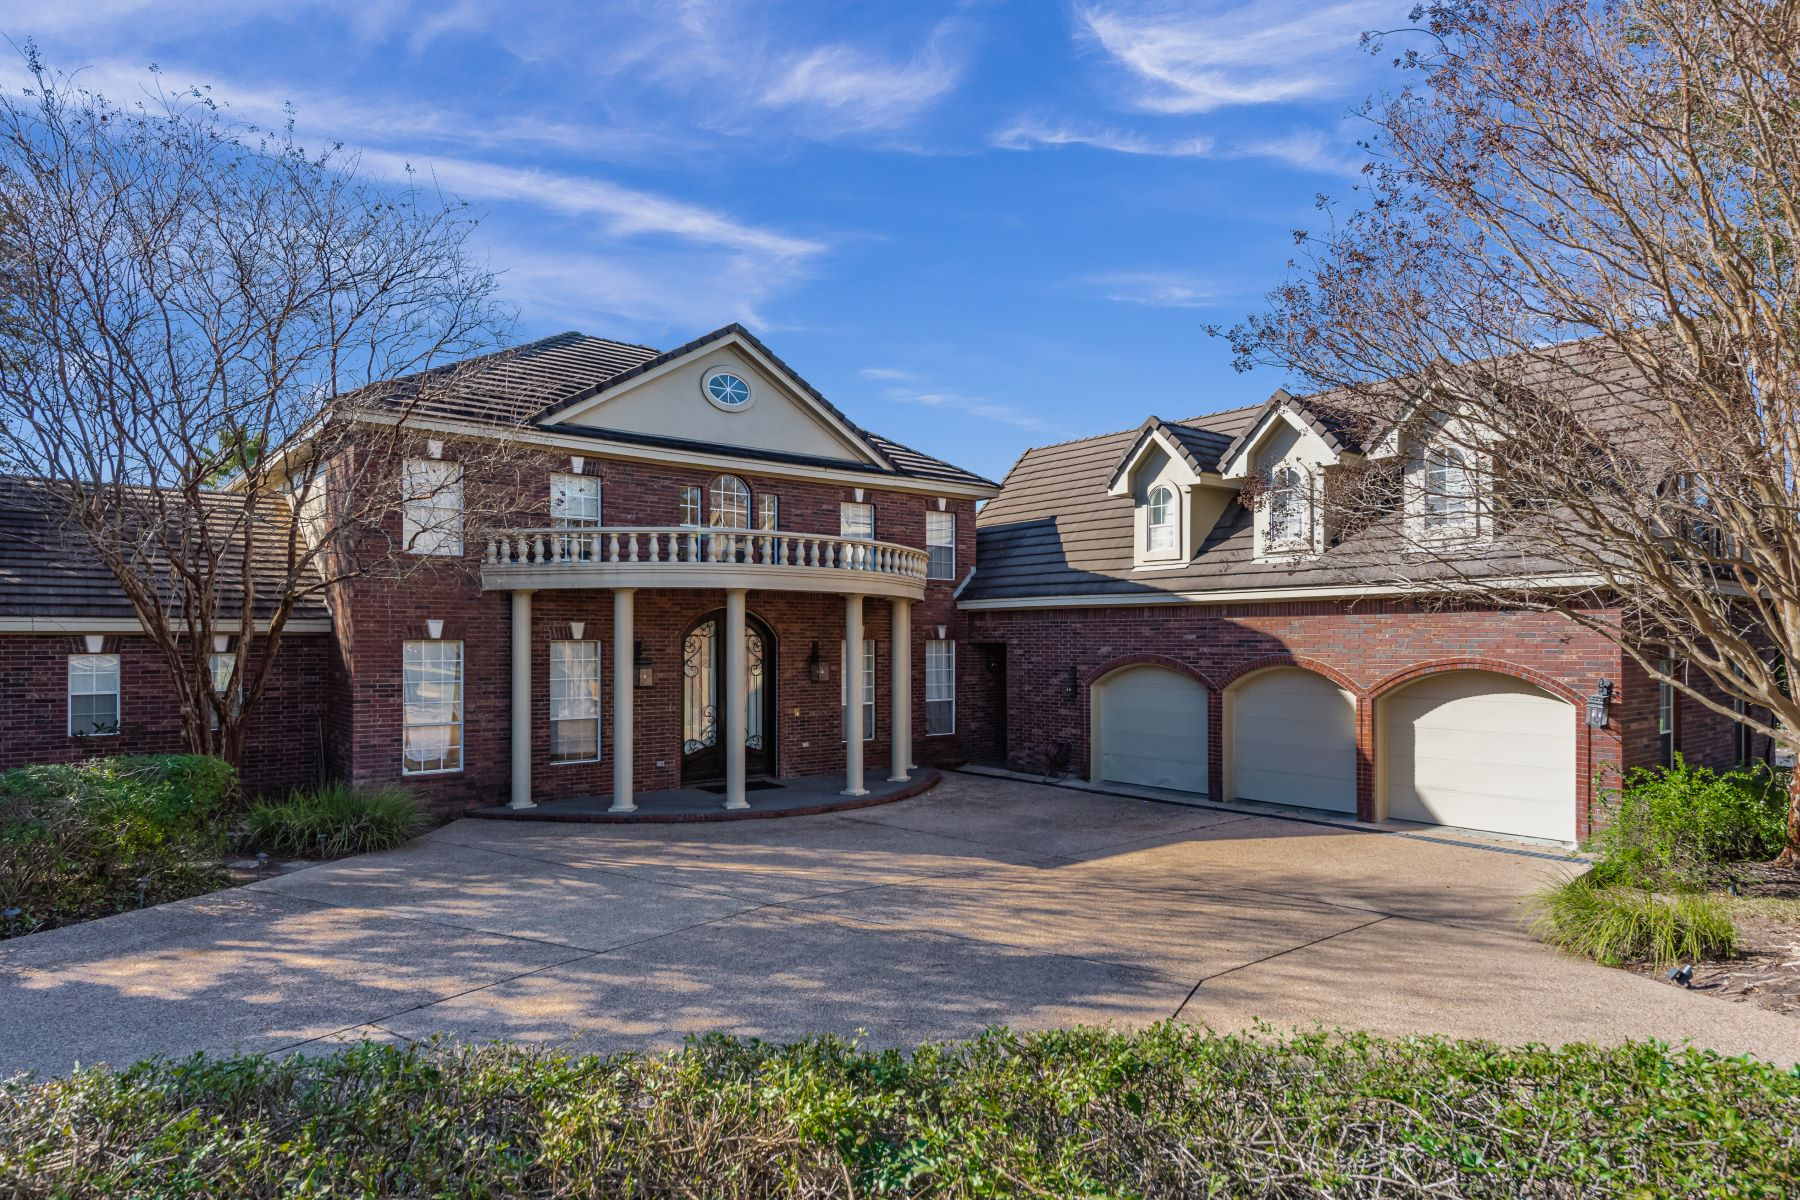 Property for Sale at 1807 Fontaine Court, Austin, TX 78734 1807 Fontaine Court Austin, Texas 78734 United States